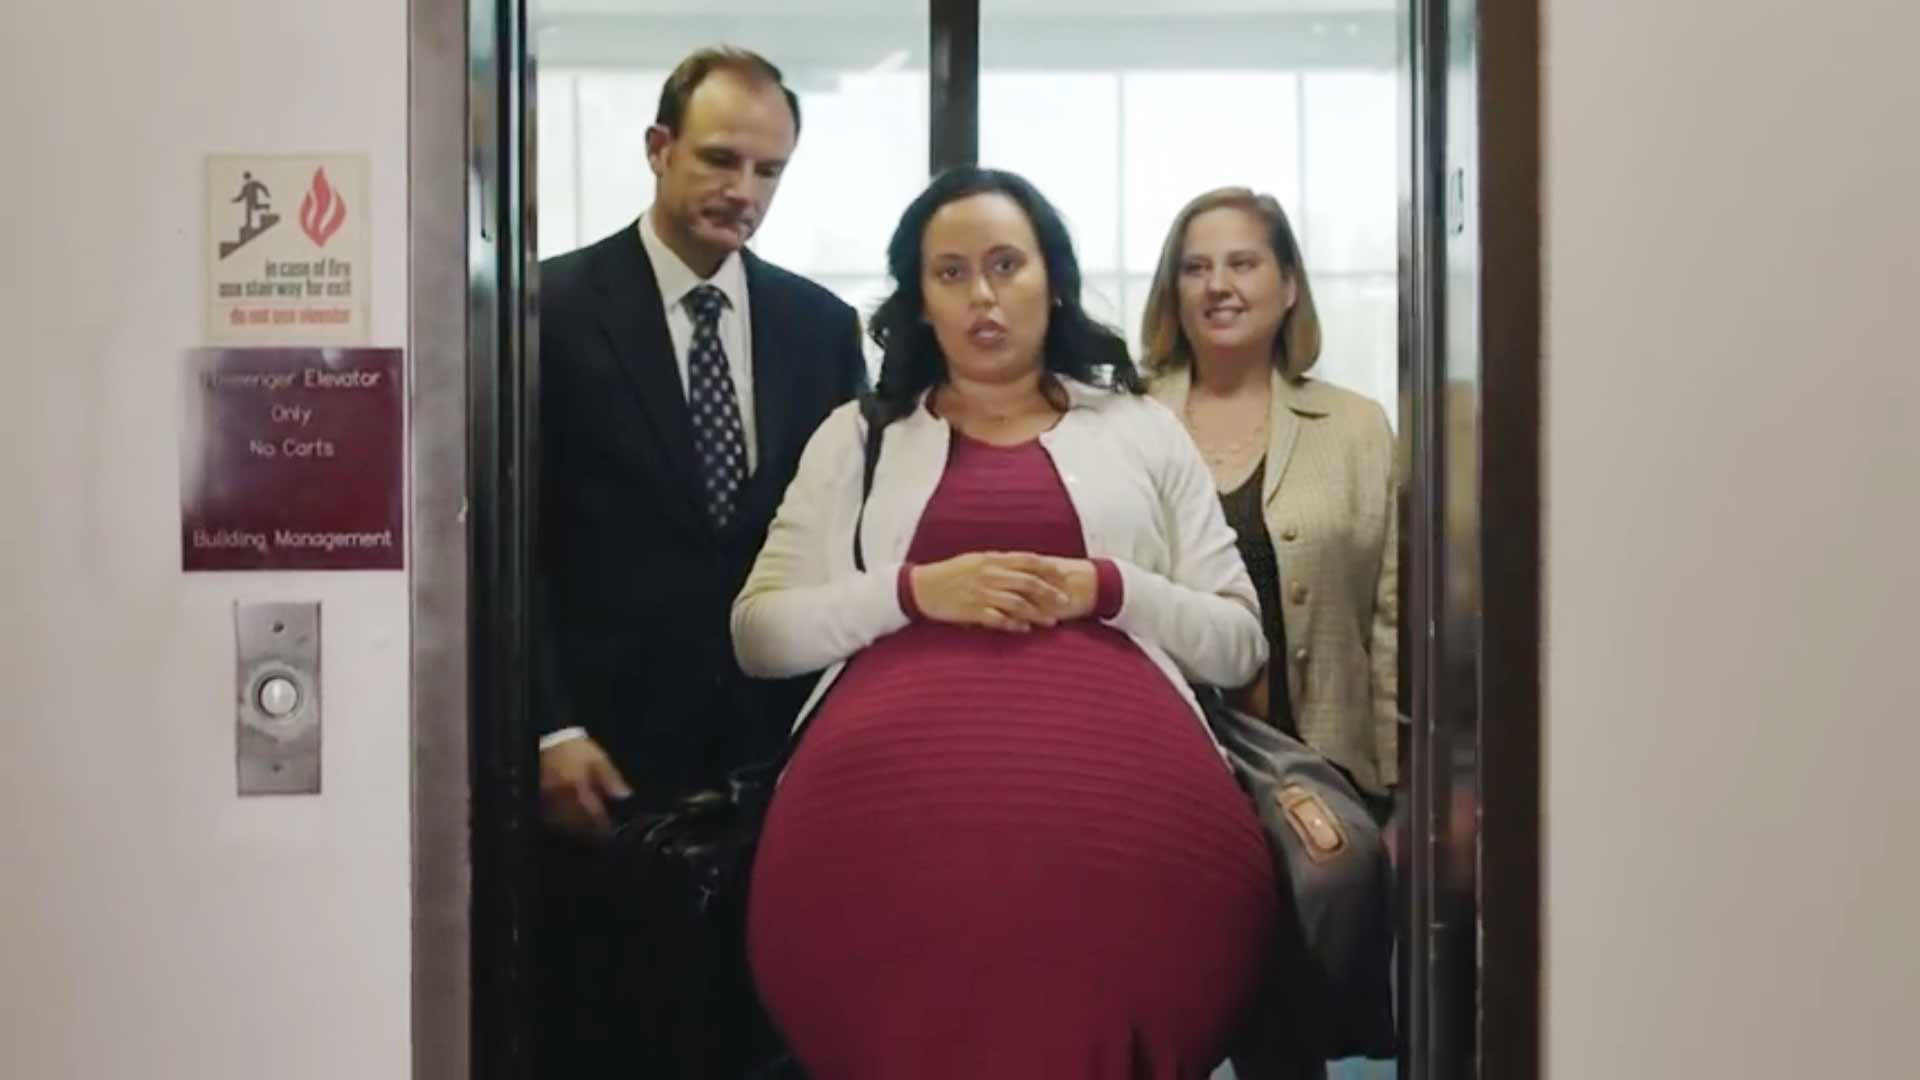 See a 260-Week-Pregnant Woman Manage Her Workday (So Many Bathroom Trips!) in PSA for Paid Maternity Leave - Health